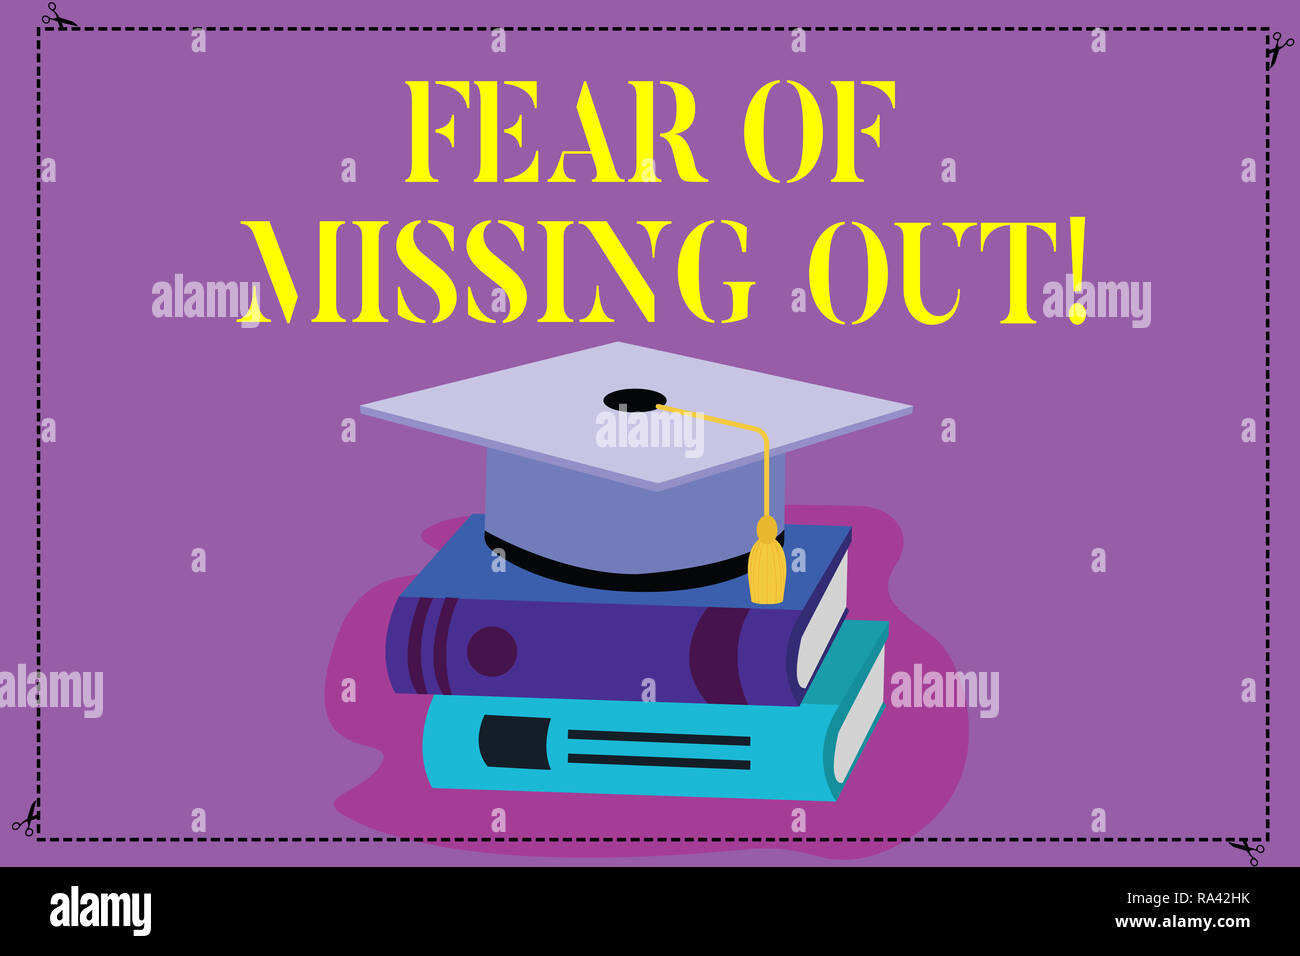 fear of missing out meaning